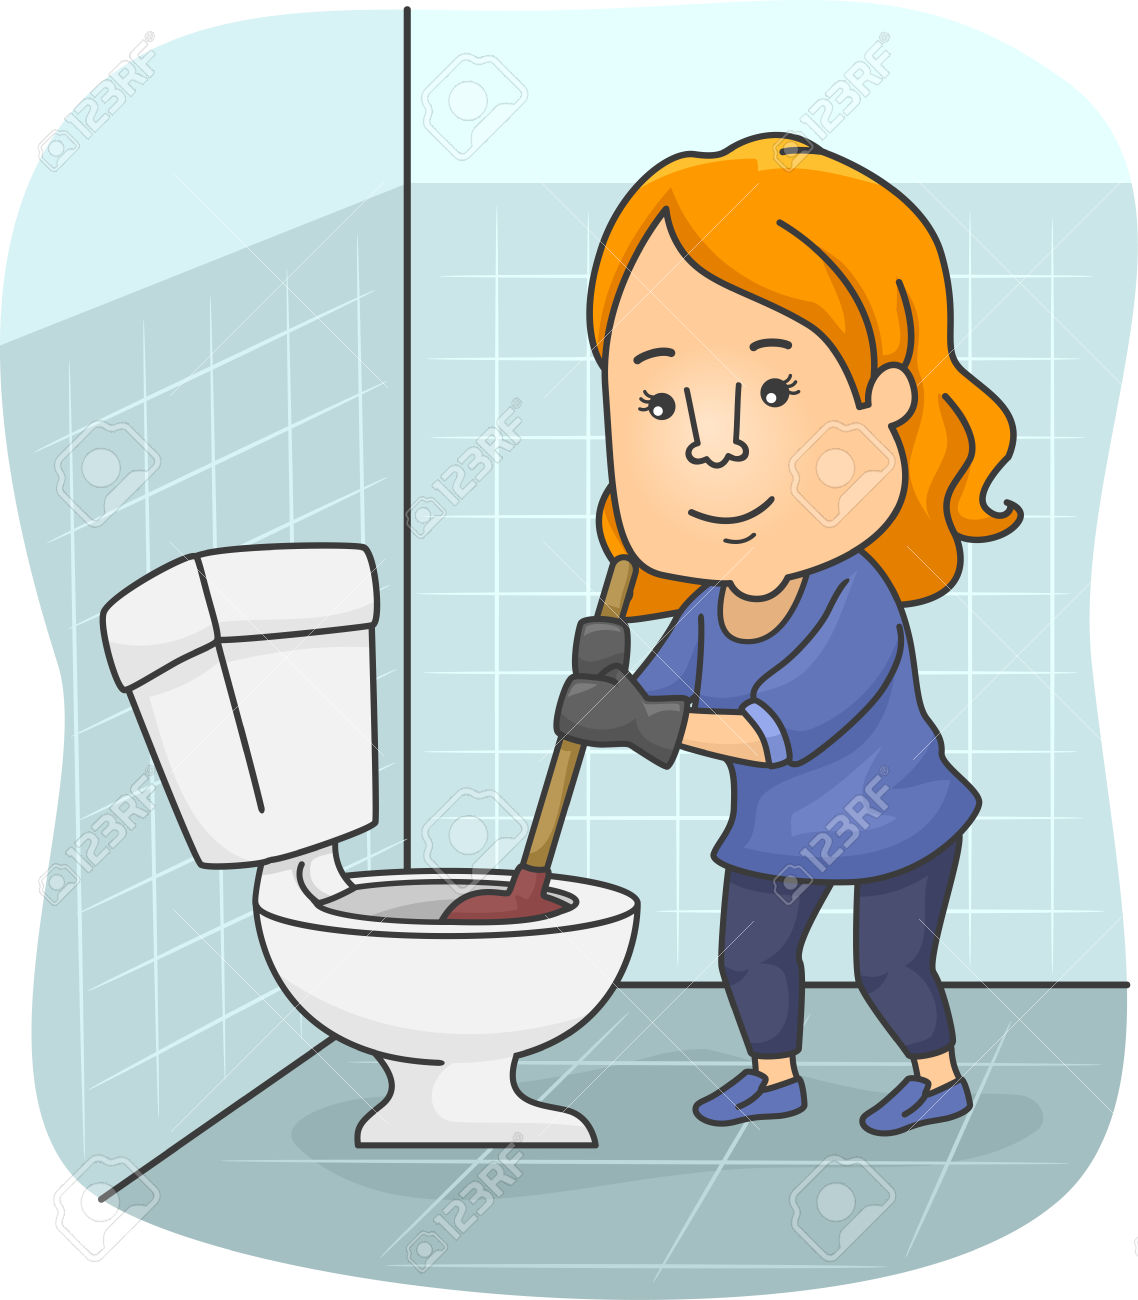 Free Clean Toilet Cliparts, Download Free Clip Art, Free.